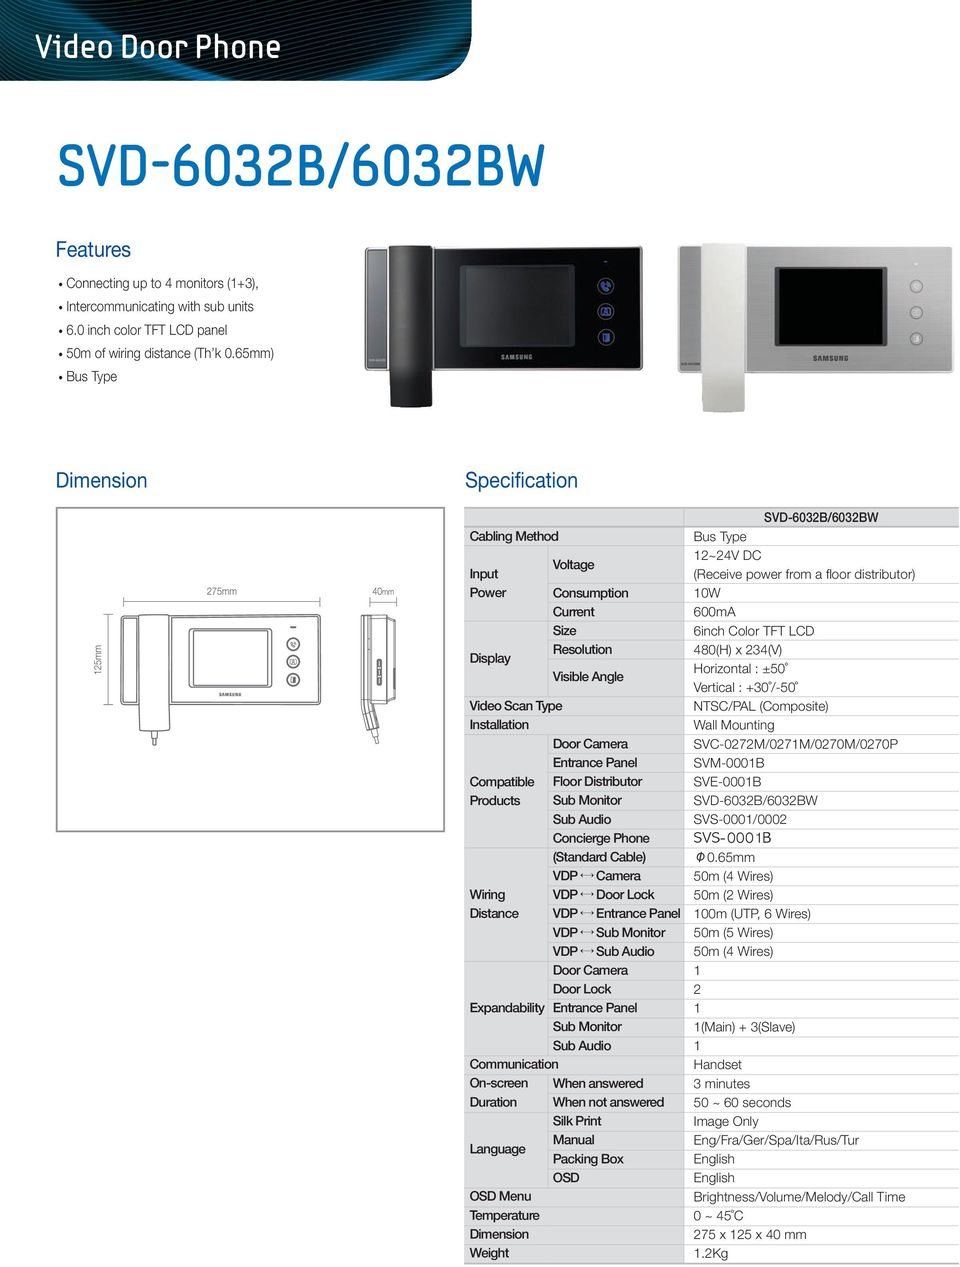 Language OSD Menu Floor Distributor Sub Monitor Sub Audio Concierge Phone VDP Camera VDP Door Lock VDP VDP Sub Monitor VDP Sub Audio Door Lock Sub Monitor When answered When not answered Silk Print